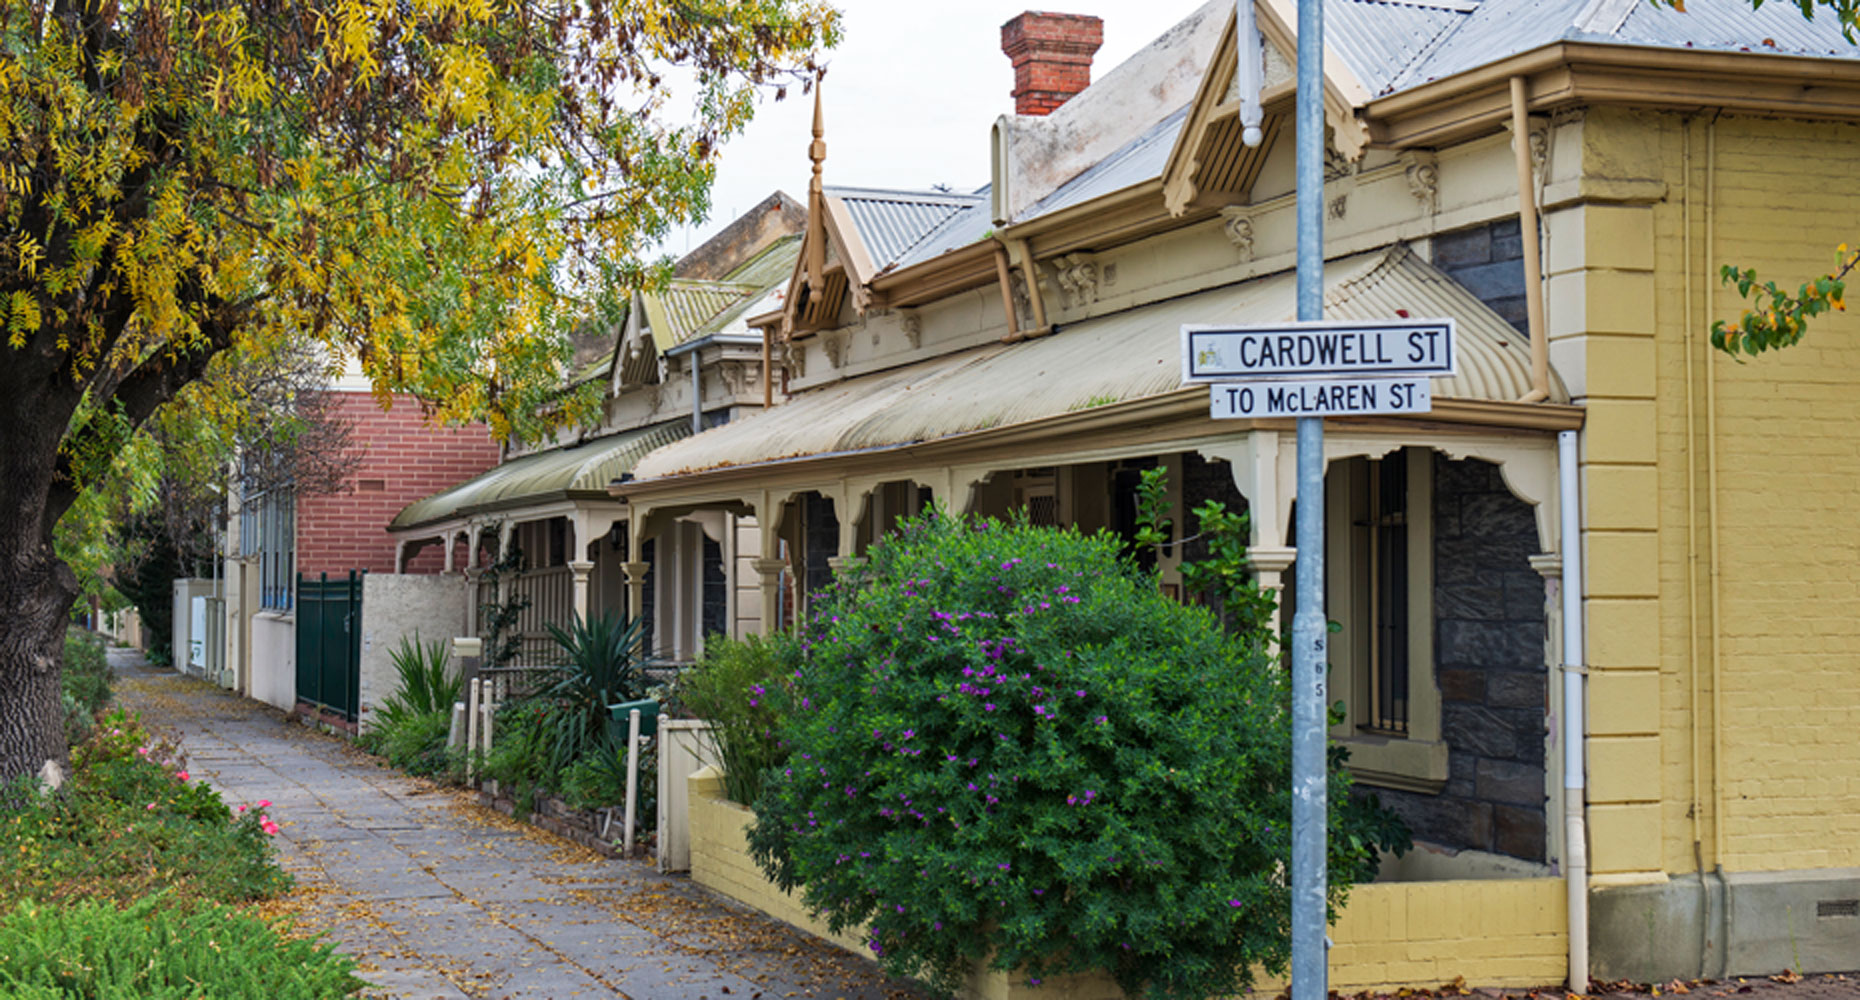 South Australia real estate for sale by owner, side street in the city